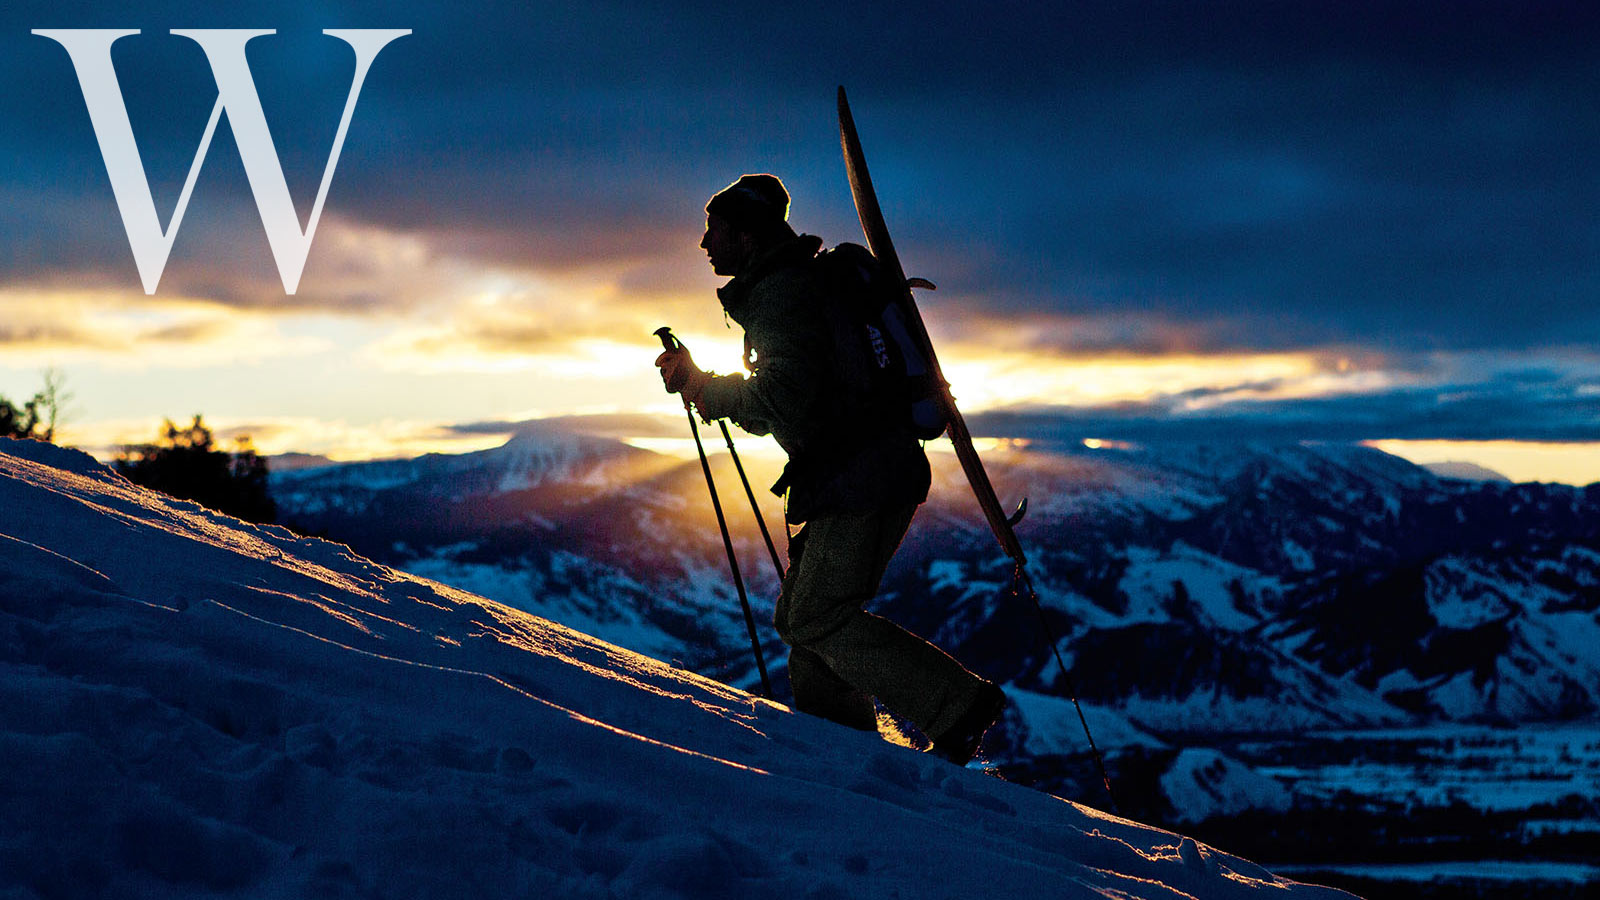 Wallpaper Wednesday The Boundless Backcountry Transworld 1600x900